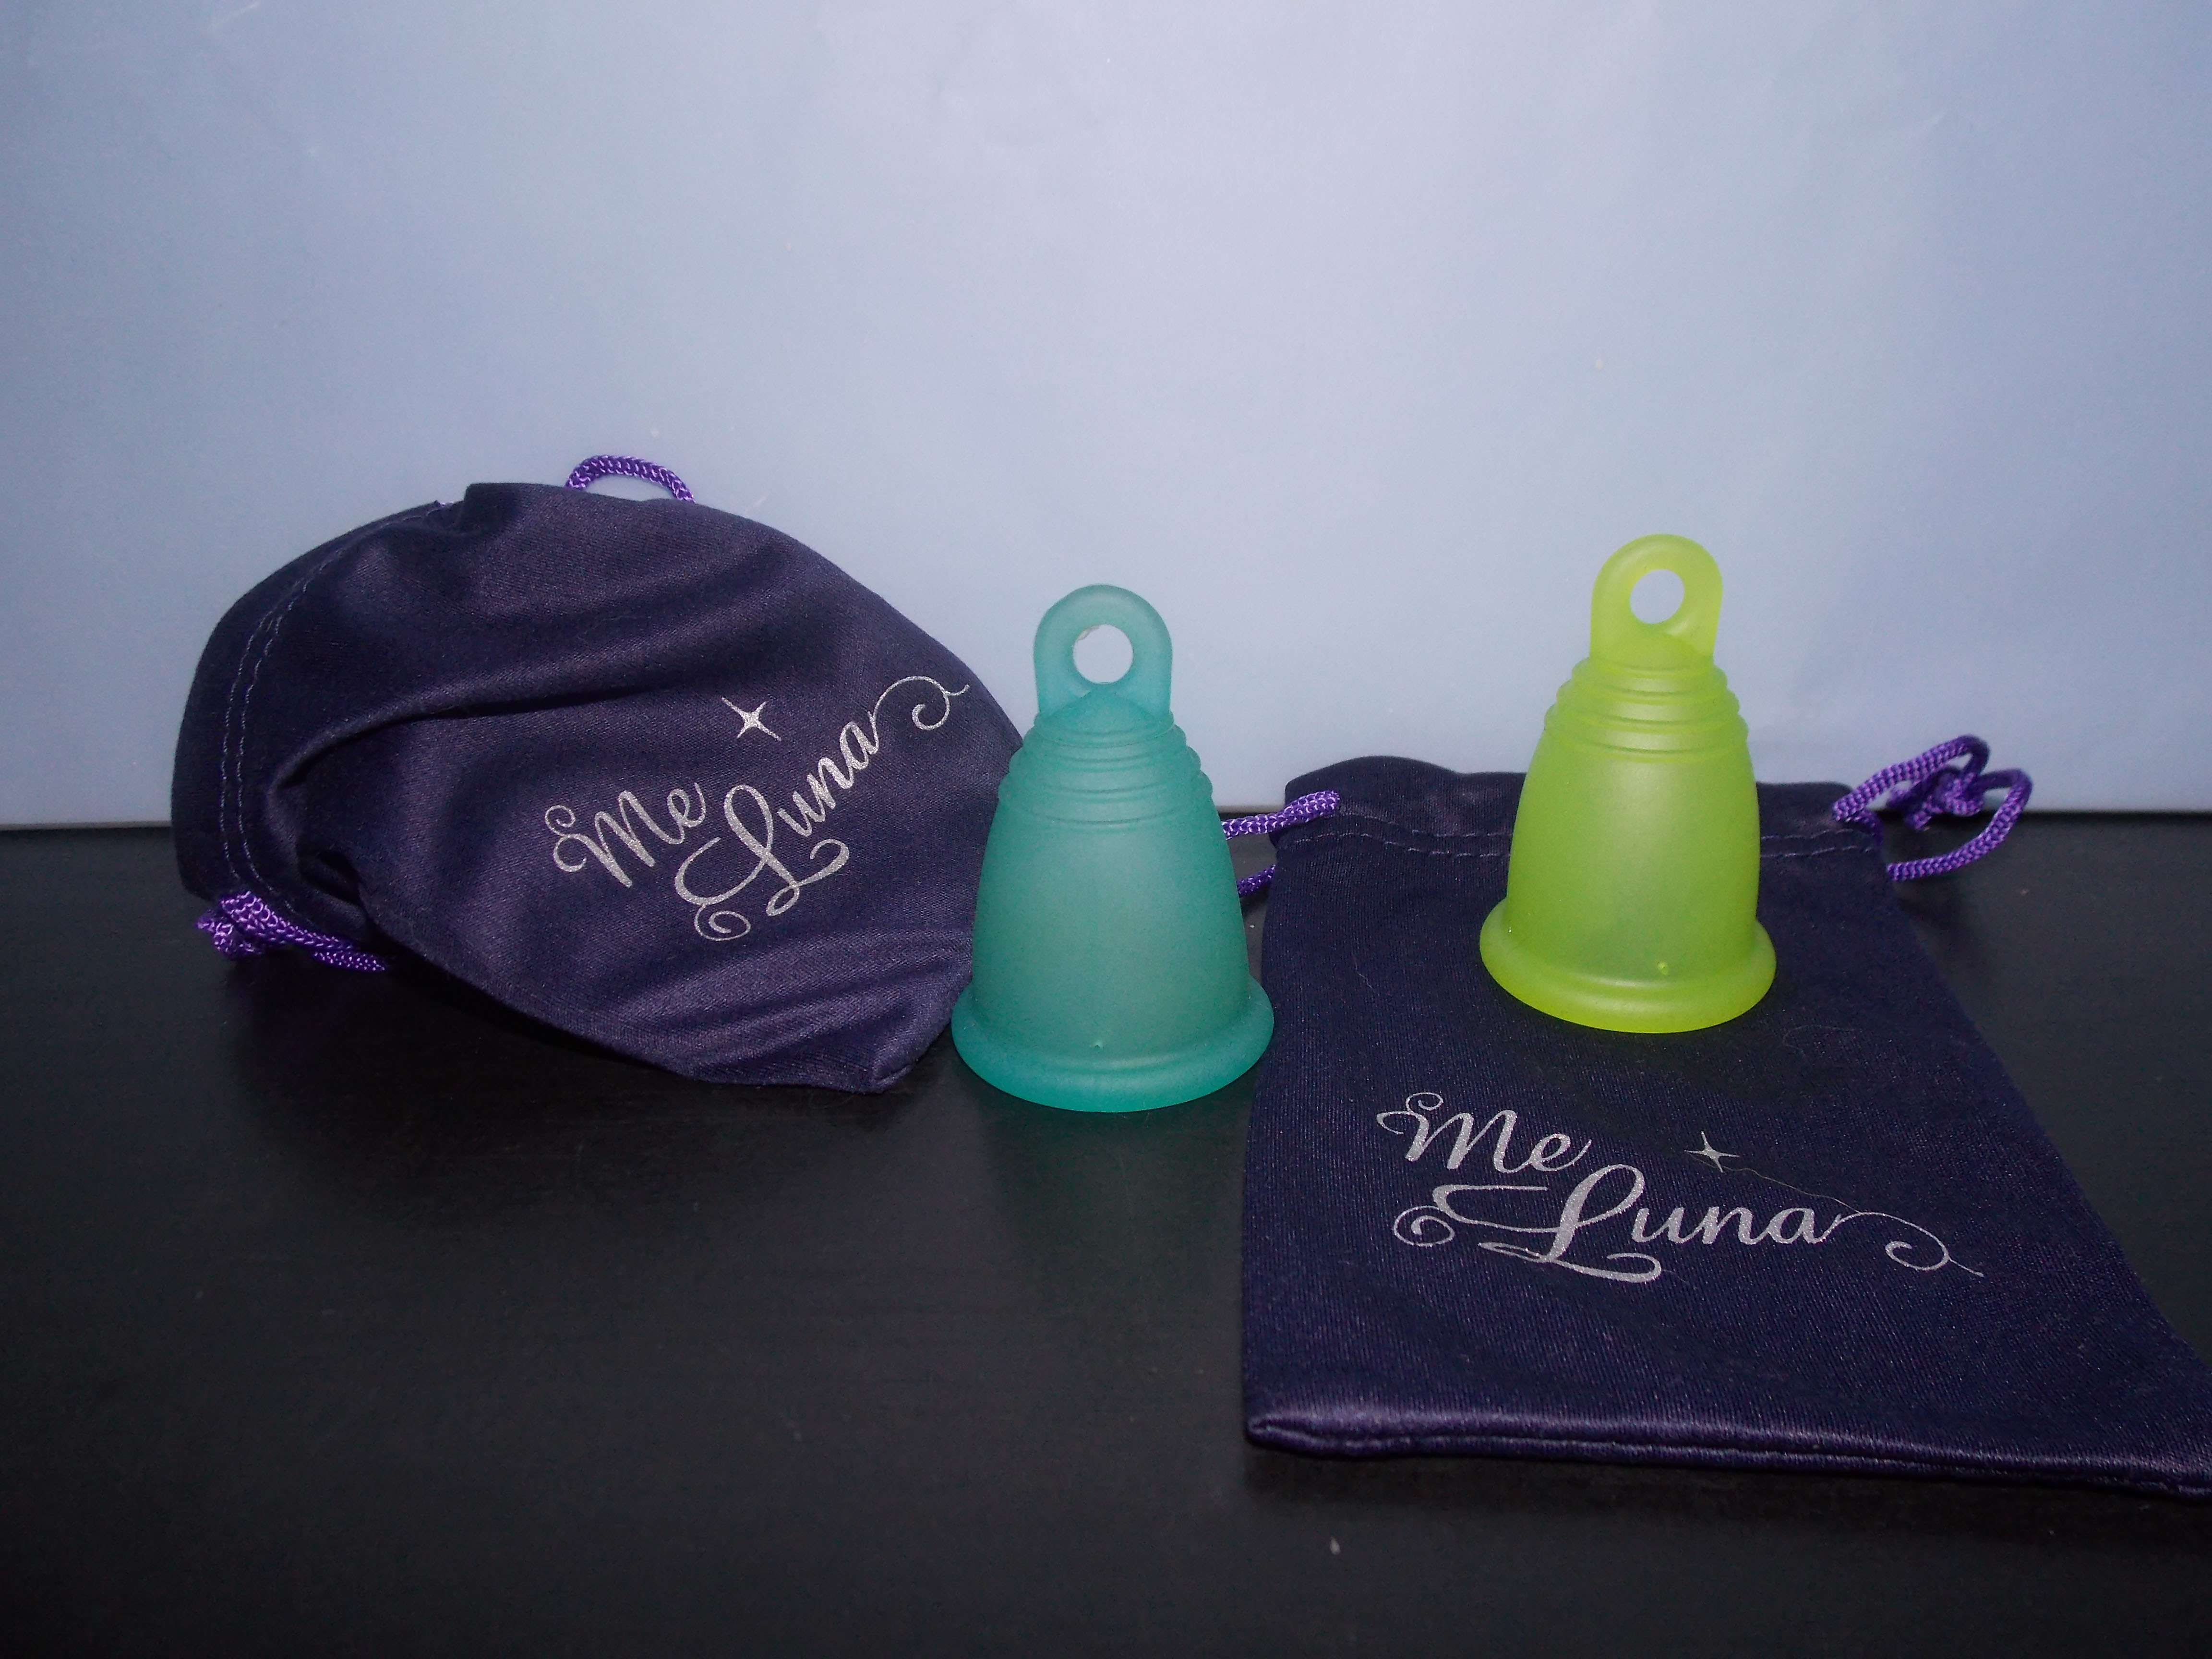 Let me present you the menstrual cup. Made from medical grade silicone or  TPE, they are strong, reusable and eco-friendly. I myself use the MeLuna  menstrual ...